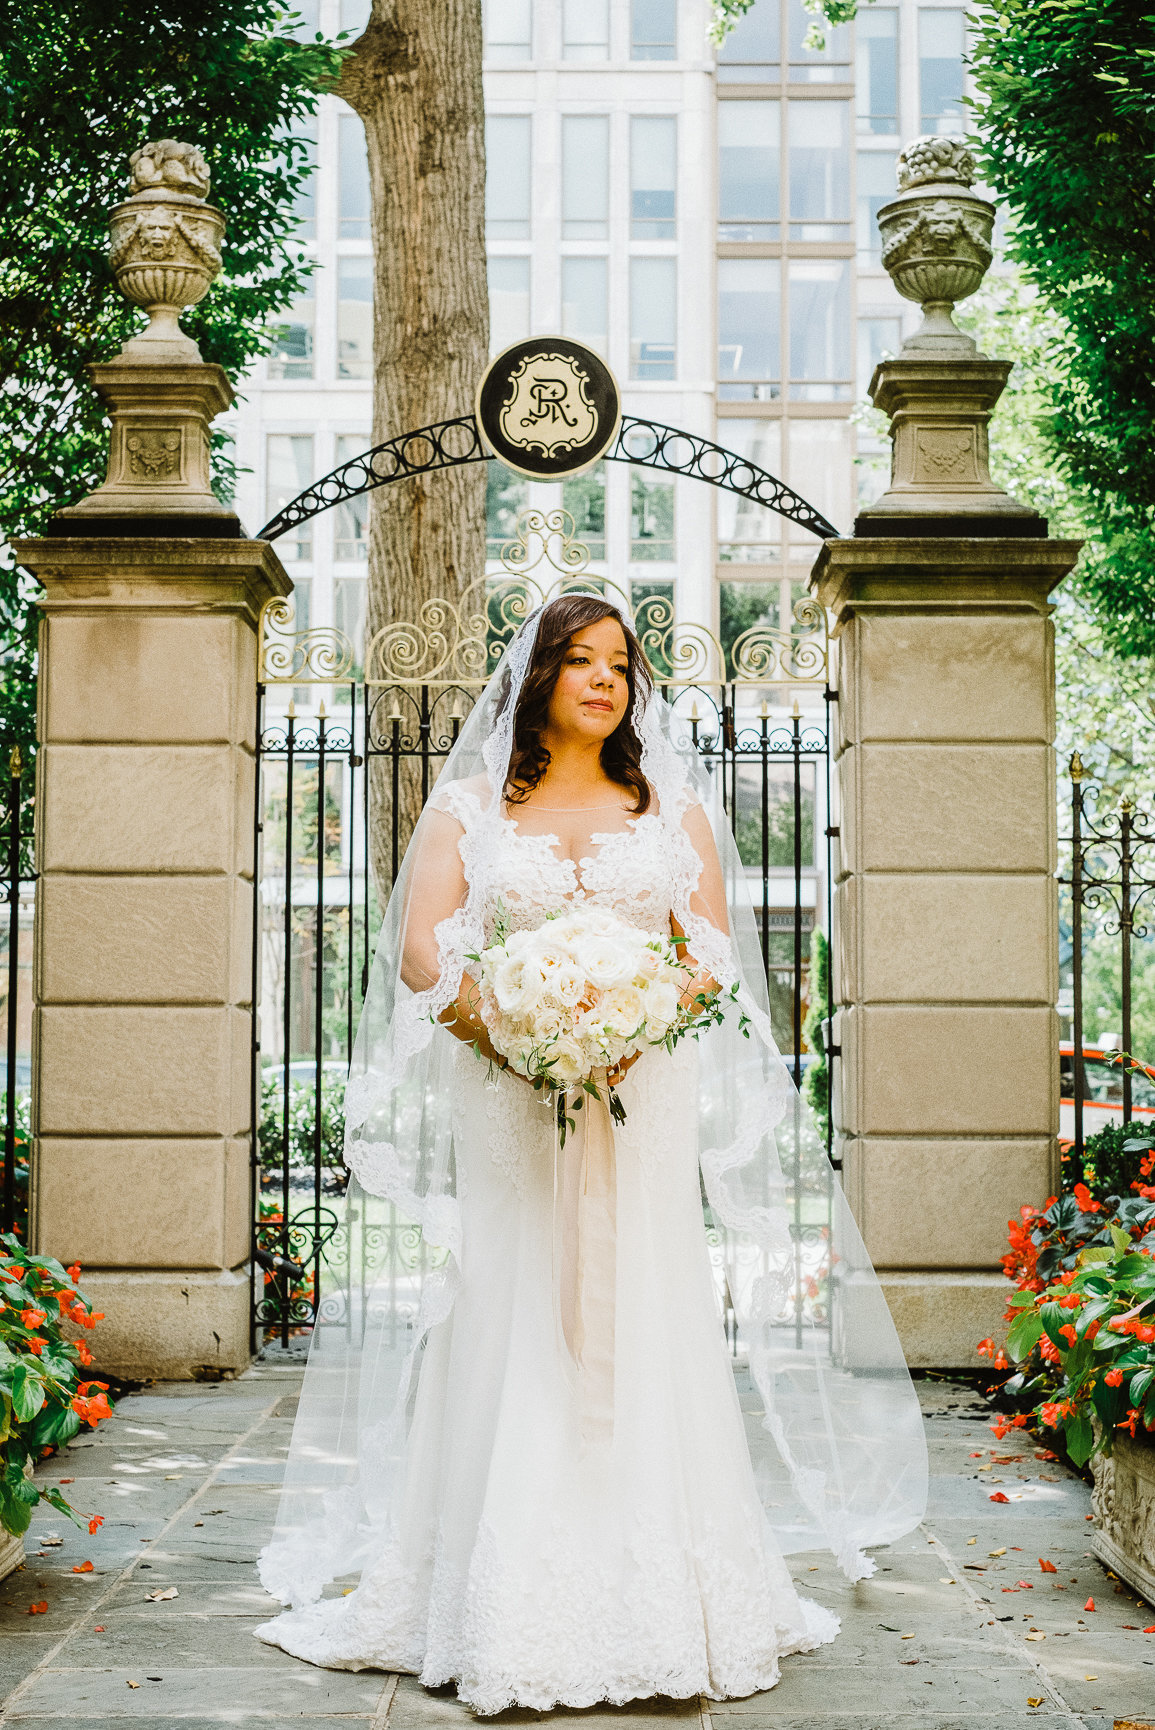 WEDDINGPHOTOGRAPHERMIAMI-137